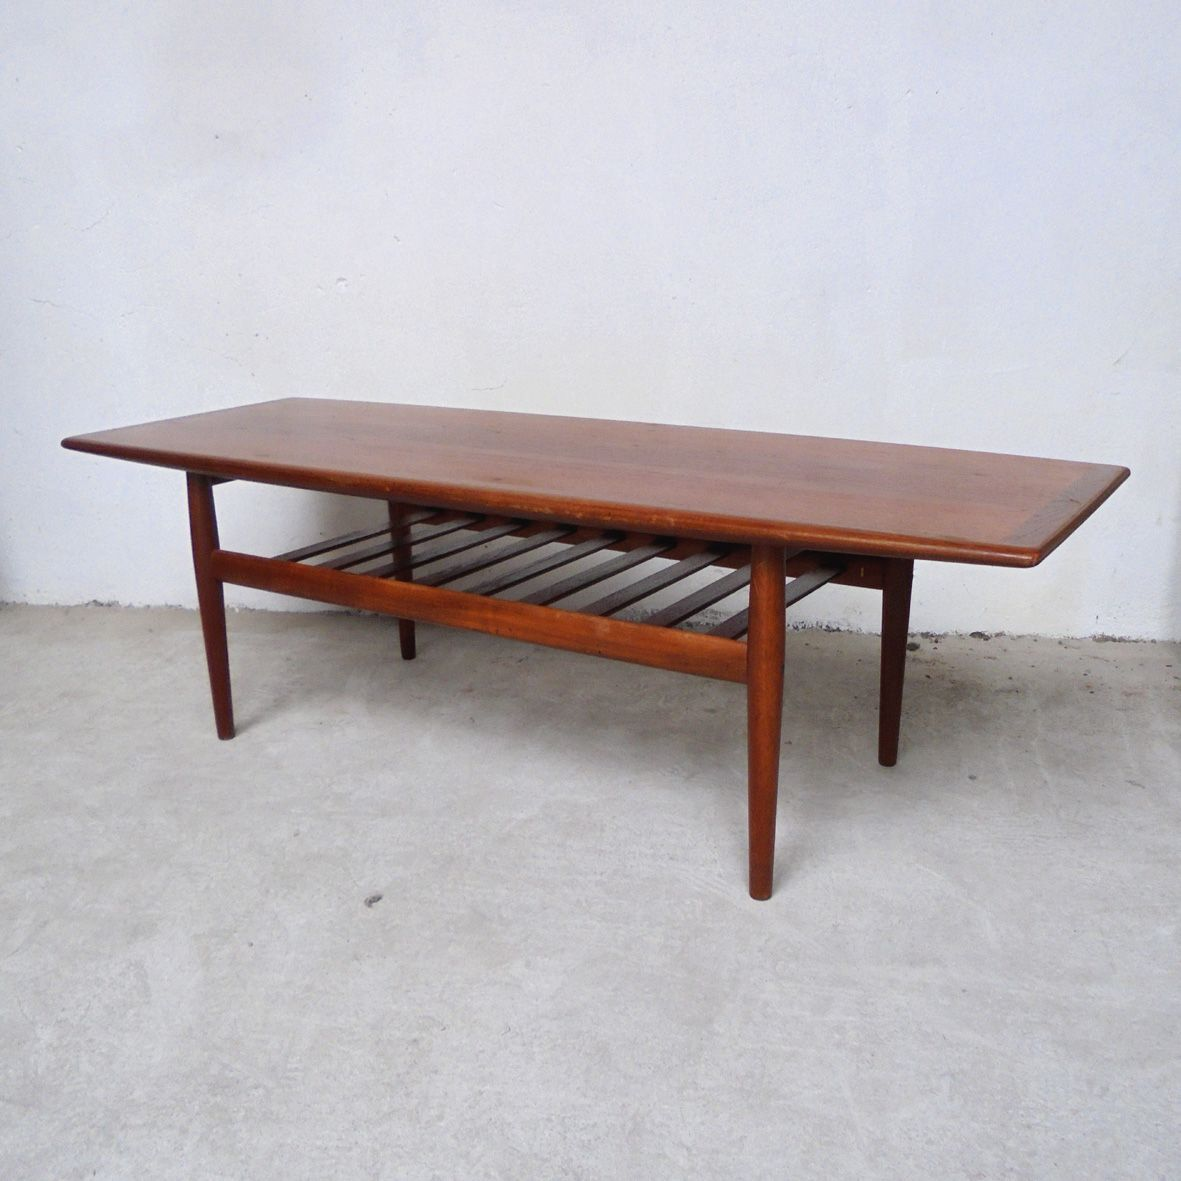 Large Danish Coffee Table By Grete Jalk For Glostrup M Belfabrik 1960s For Sale At Pamono